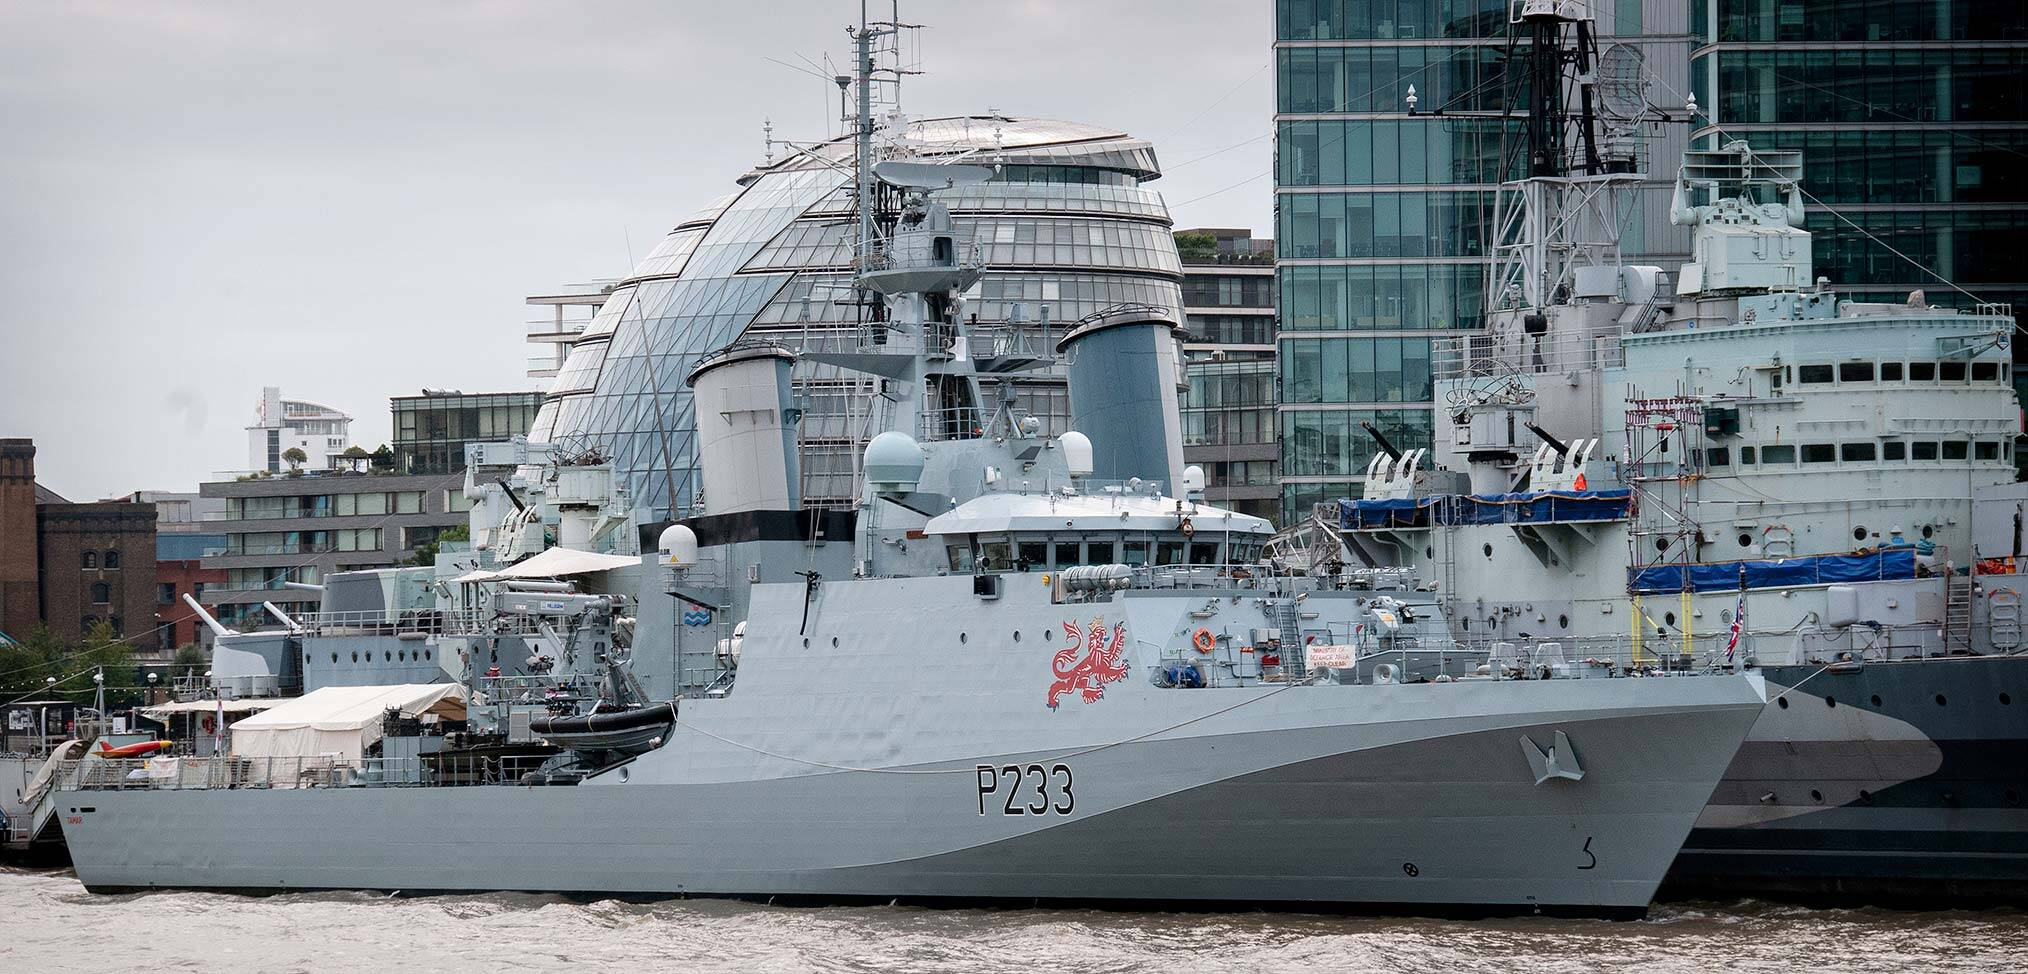 Tamar on the Thames – the Royal Navy's newest warship on show in London